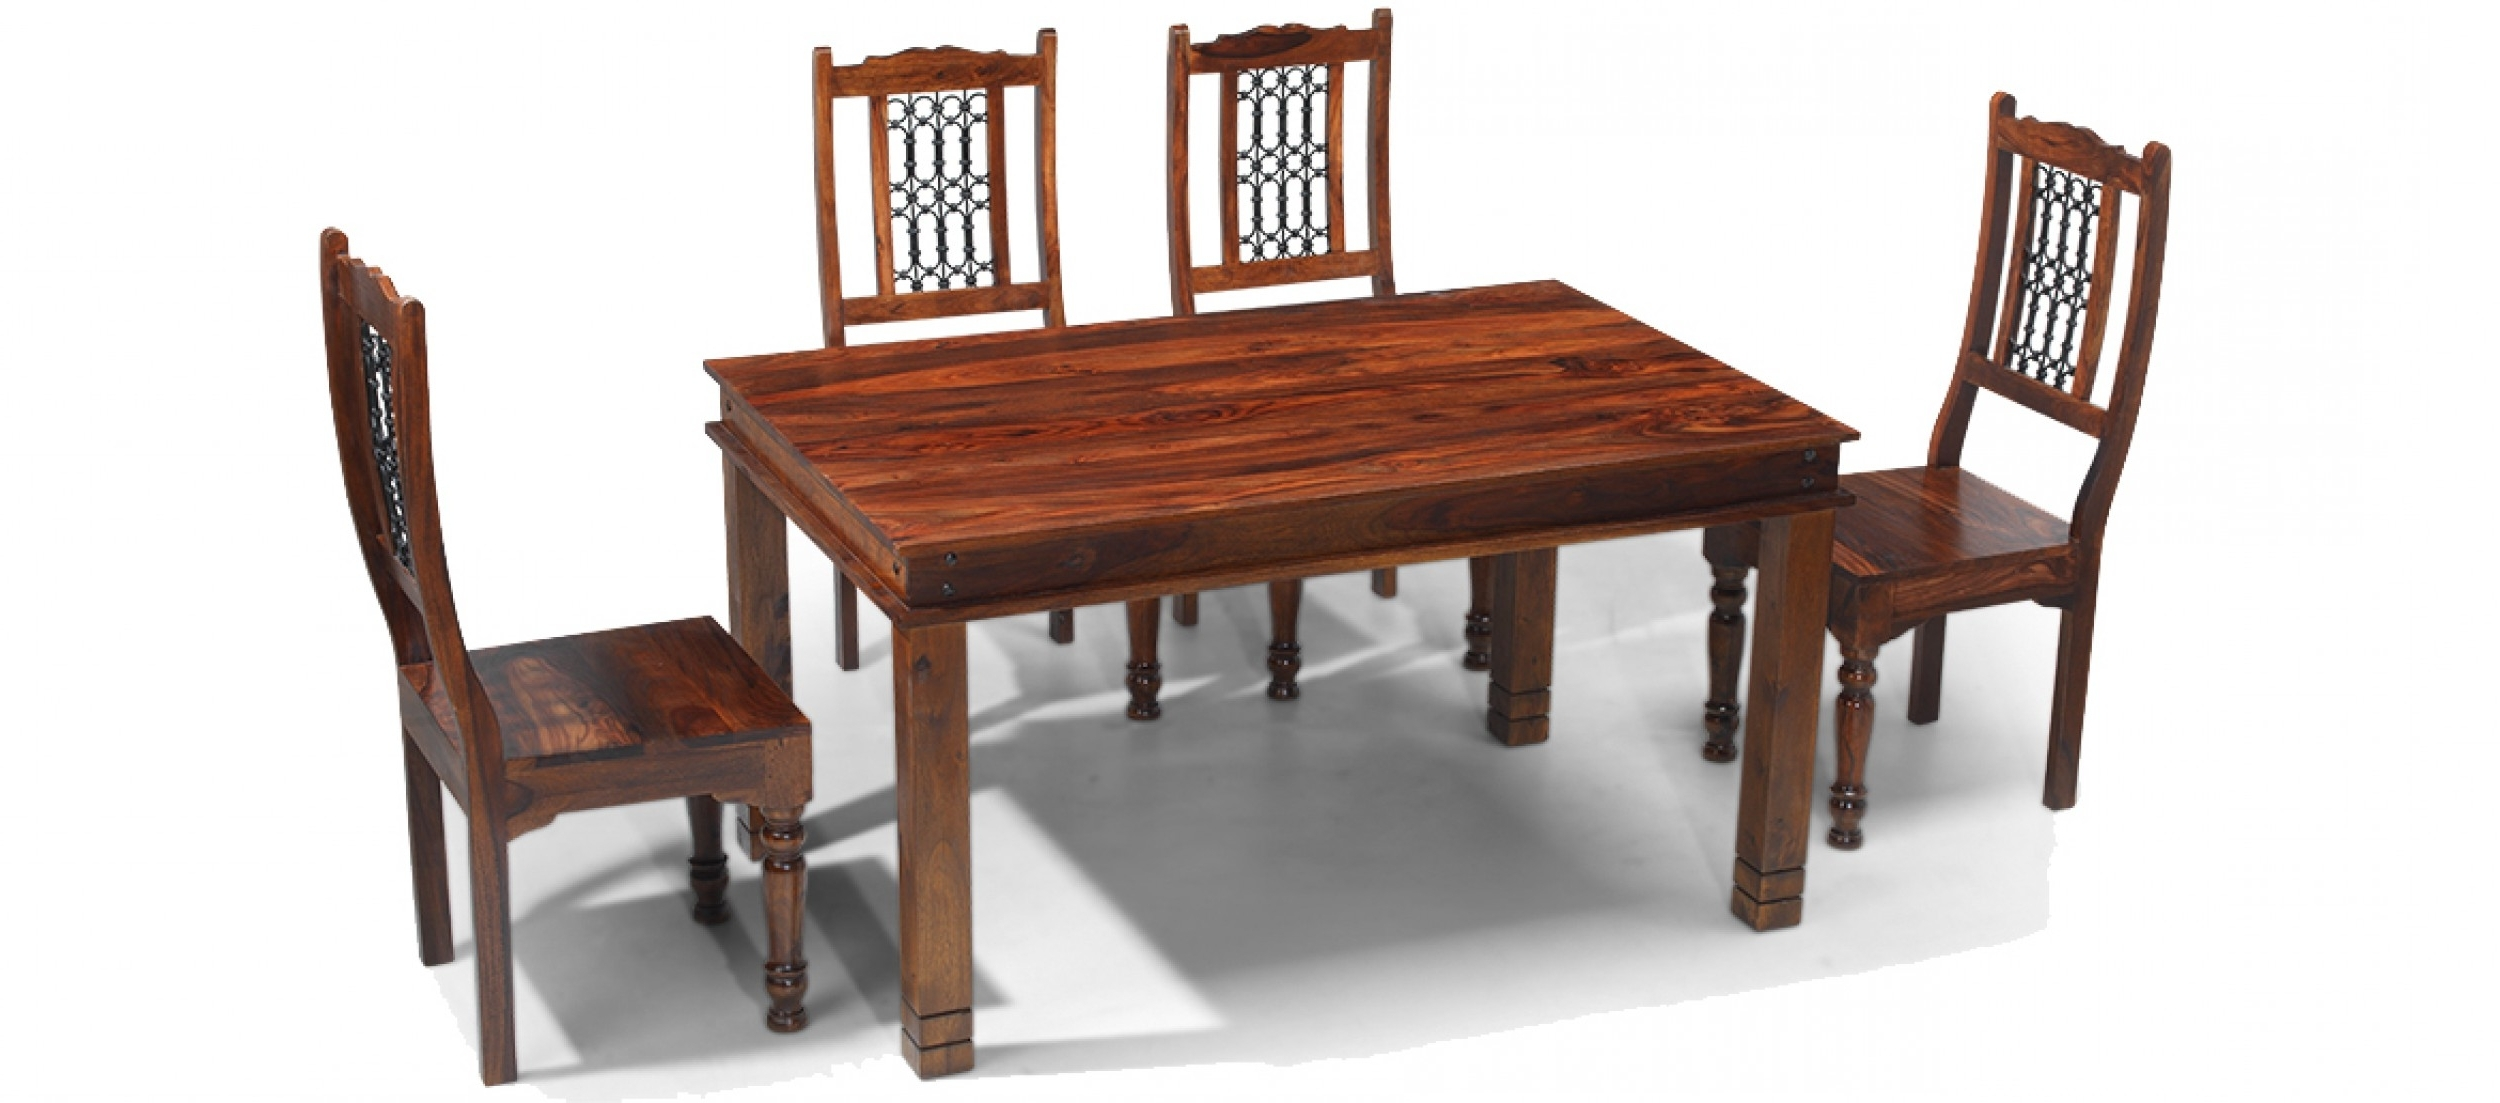 Sheesham Dining Tables Pertaining To Most Current Jali Sheesham 120 Cm Chunky Dining Table And 4 Chairs (View 22 of 25)